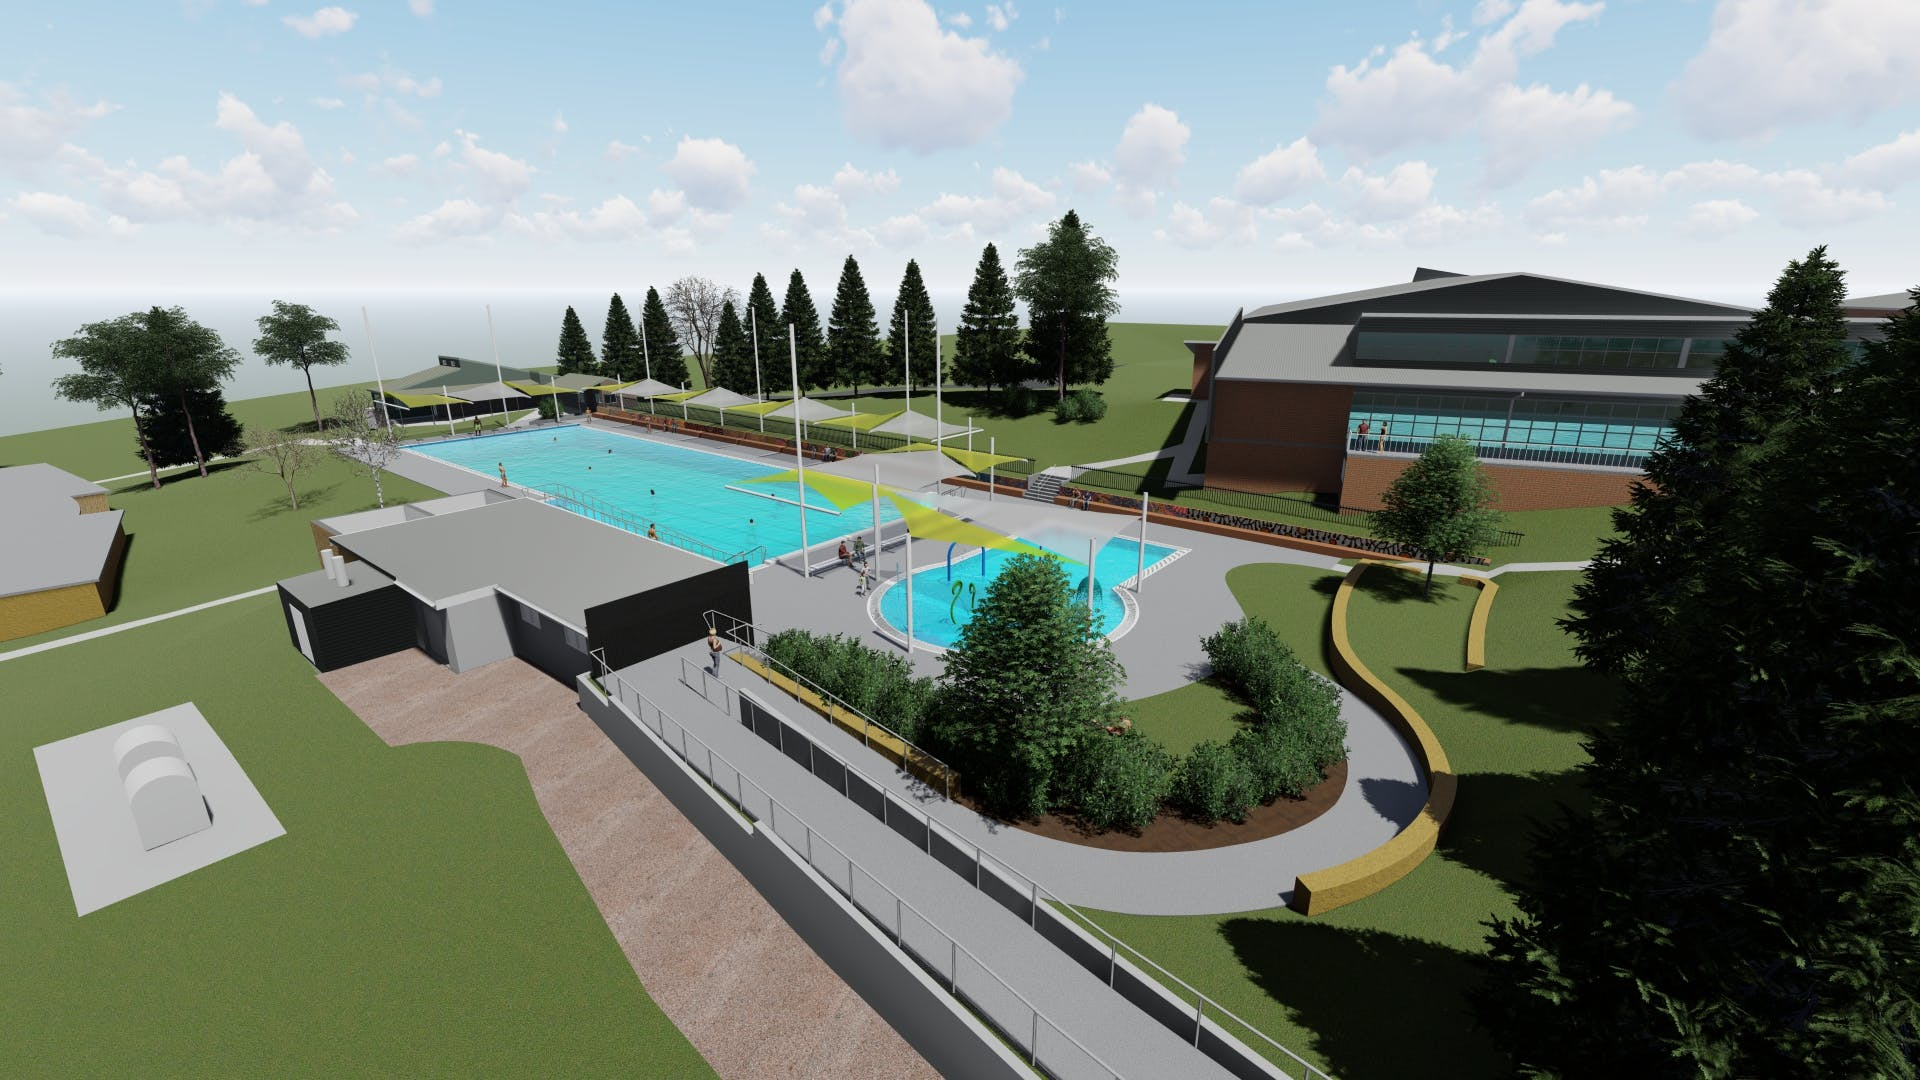 Accessible Walkway and Children's Pool - concept design